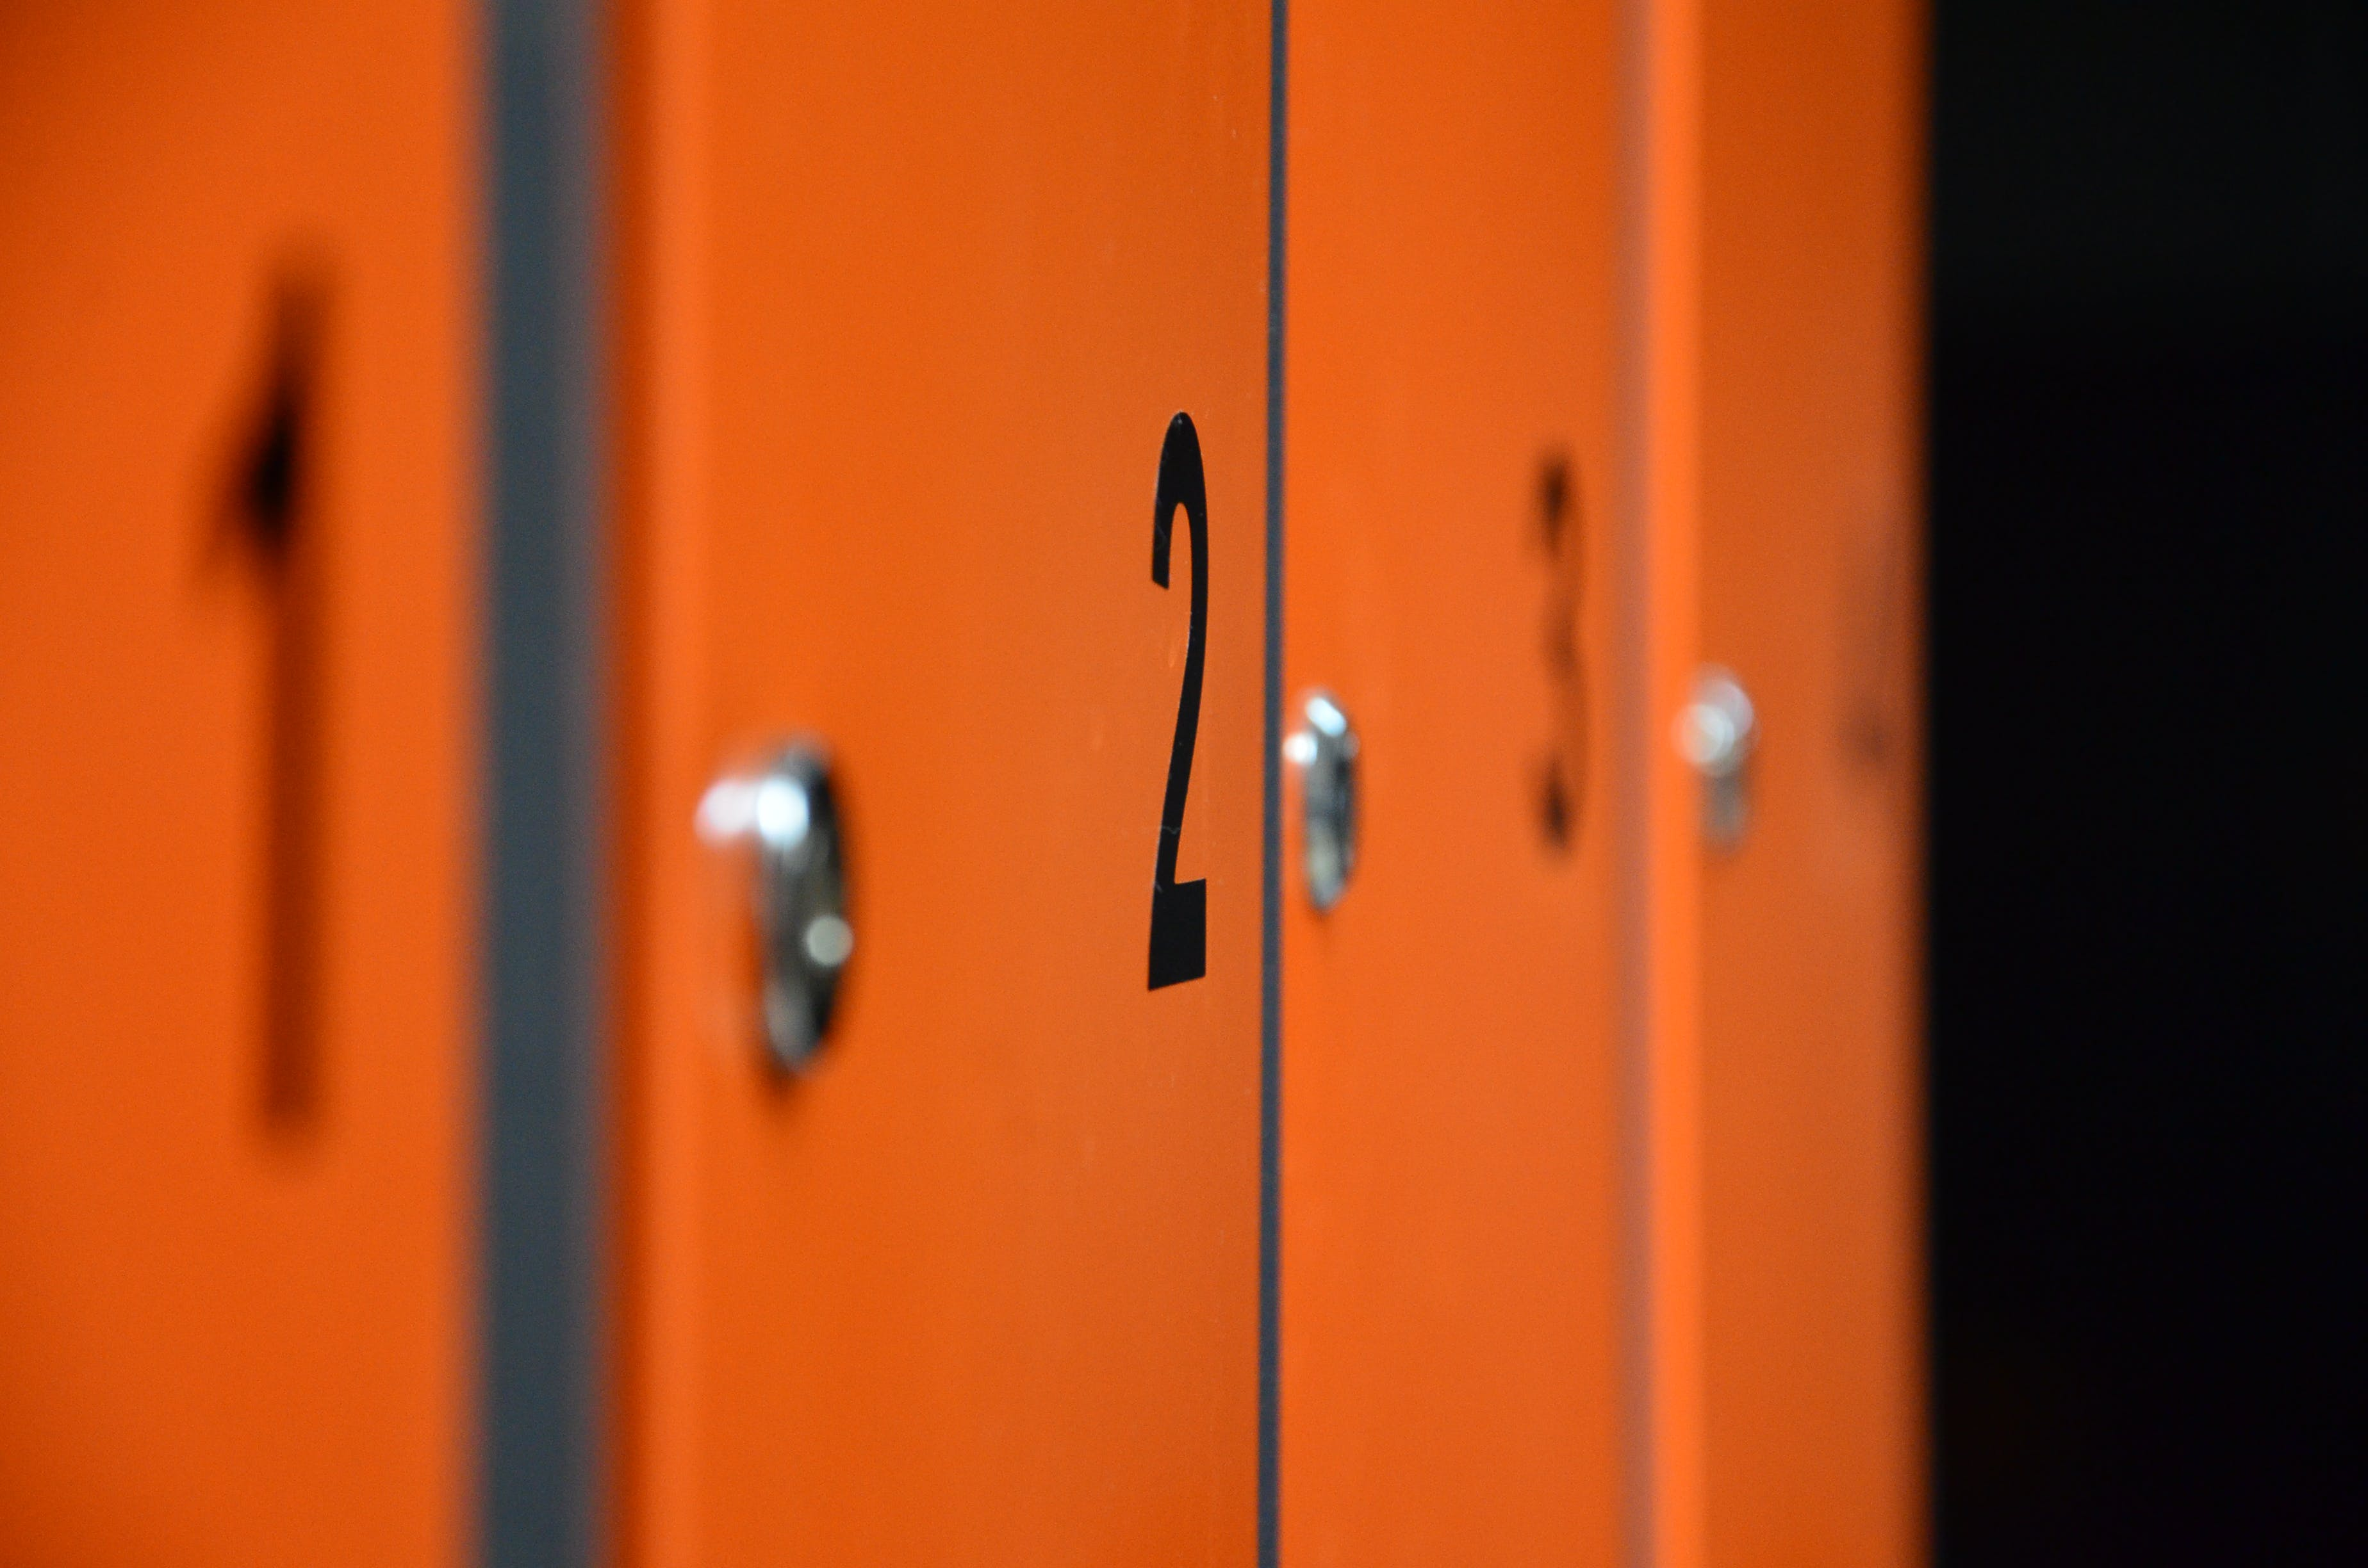 Closeup Photo of 1, 2, 3, and 4 Locker